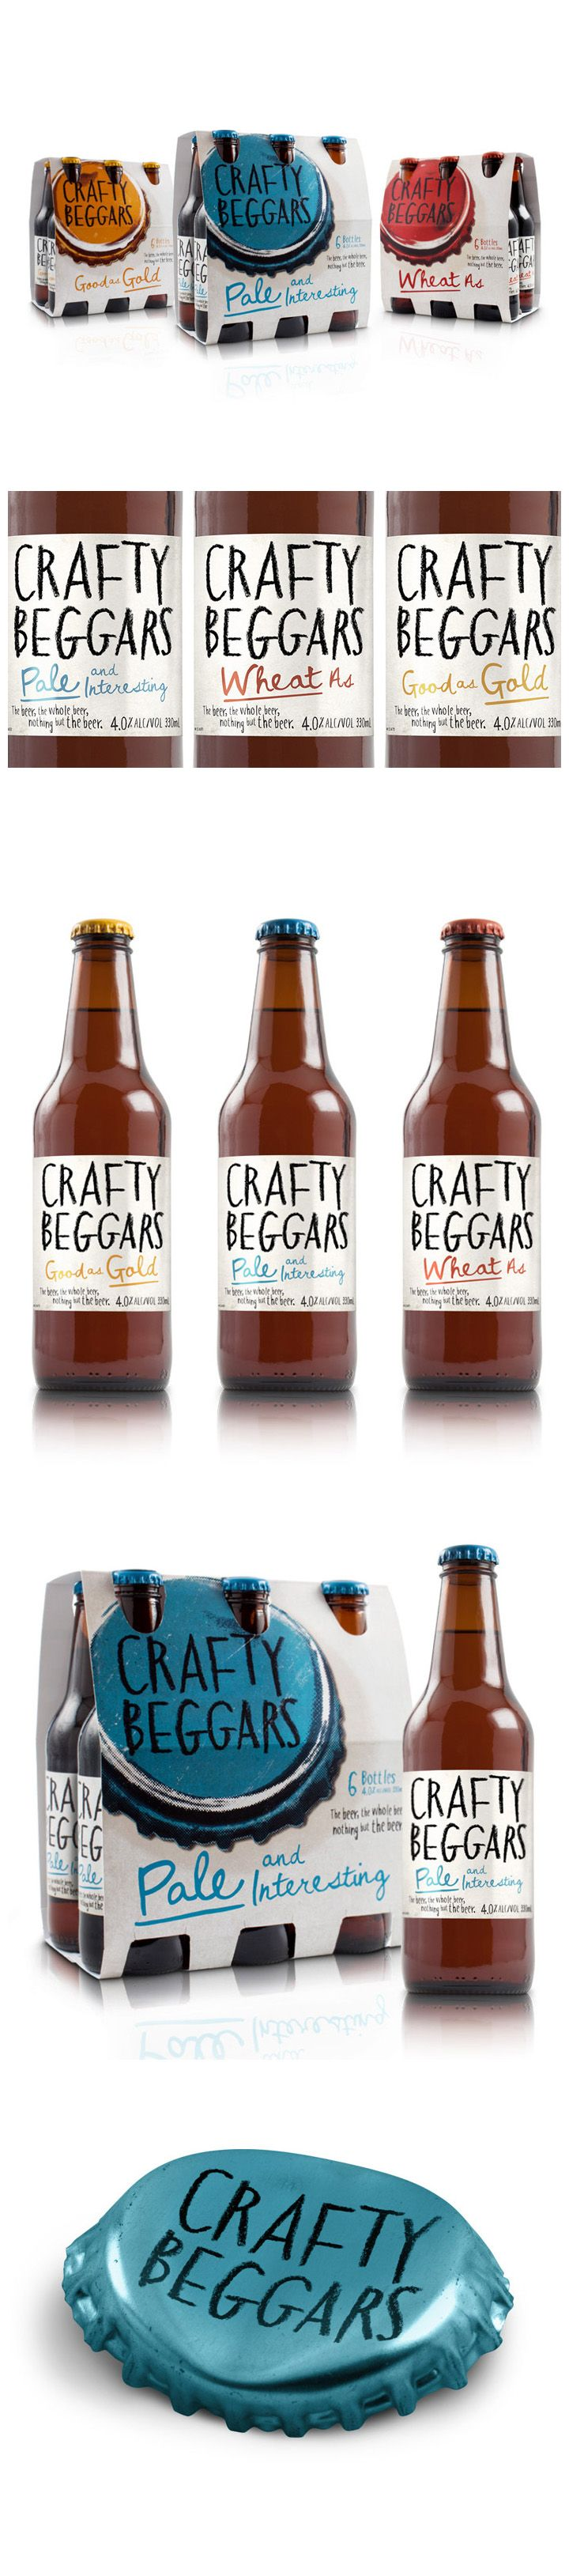 Nice Packaging from Crafty Beggars by Curious Design #beer #beverage #packaging